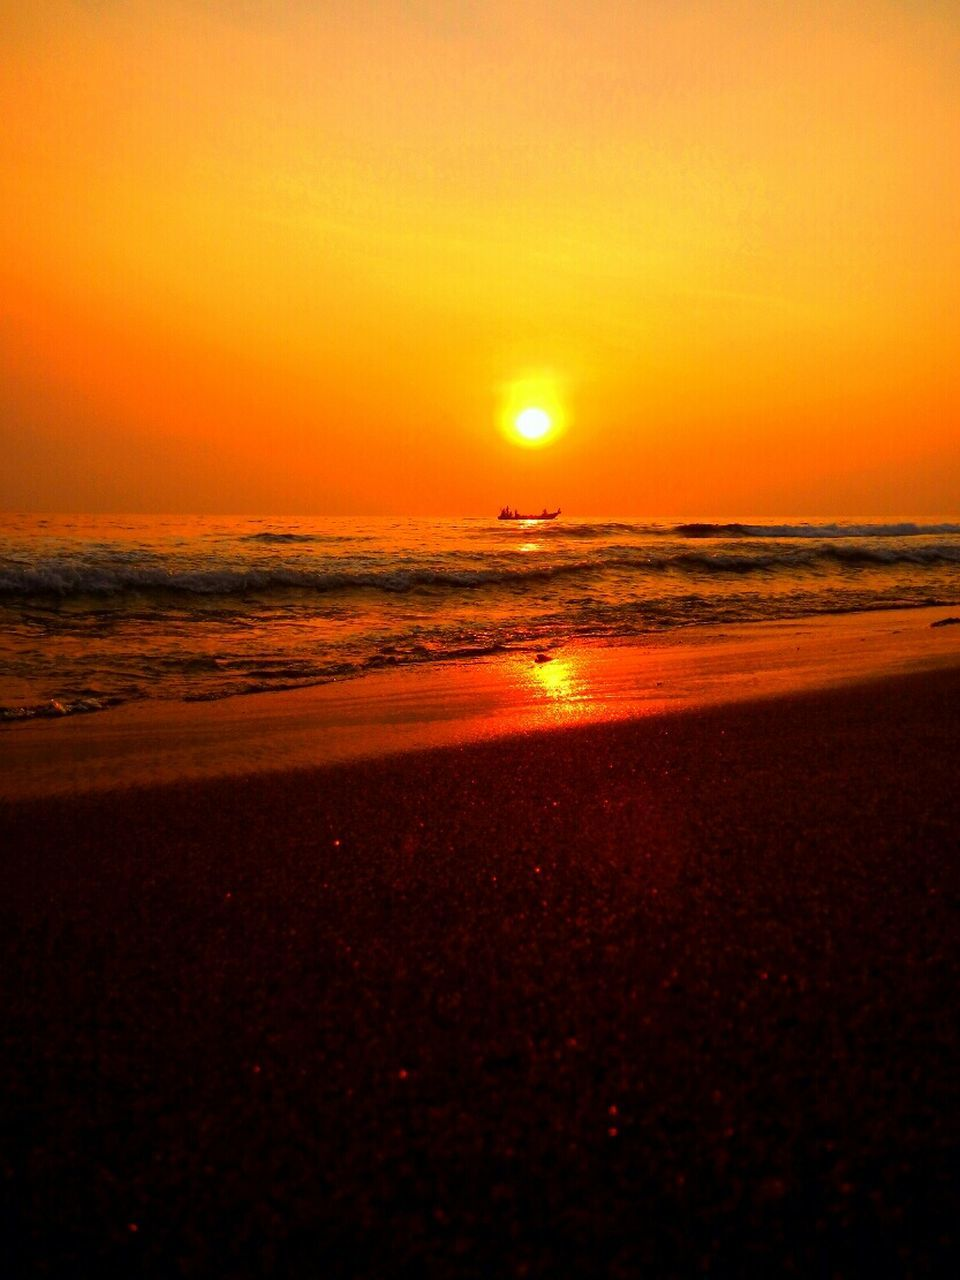 sunset, sea, beach, beauty in nature, sun, scenics, nature, orange color, tranquil scene, tranquility, horizon over water, water, idyllic, outdoors, sky, sunlight, sand, no people, vacations, clear sky, wave